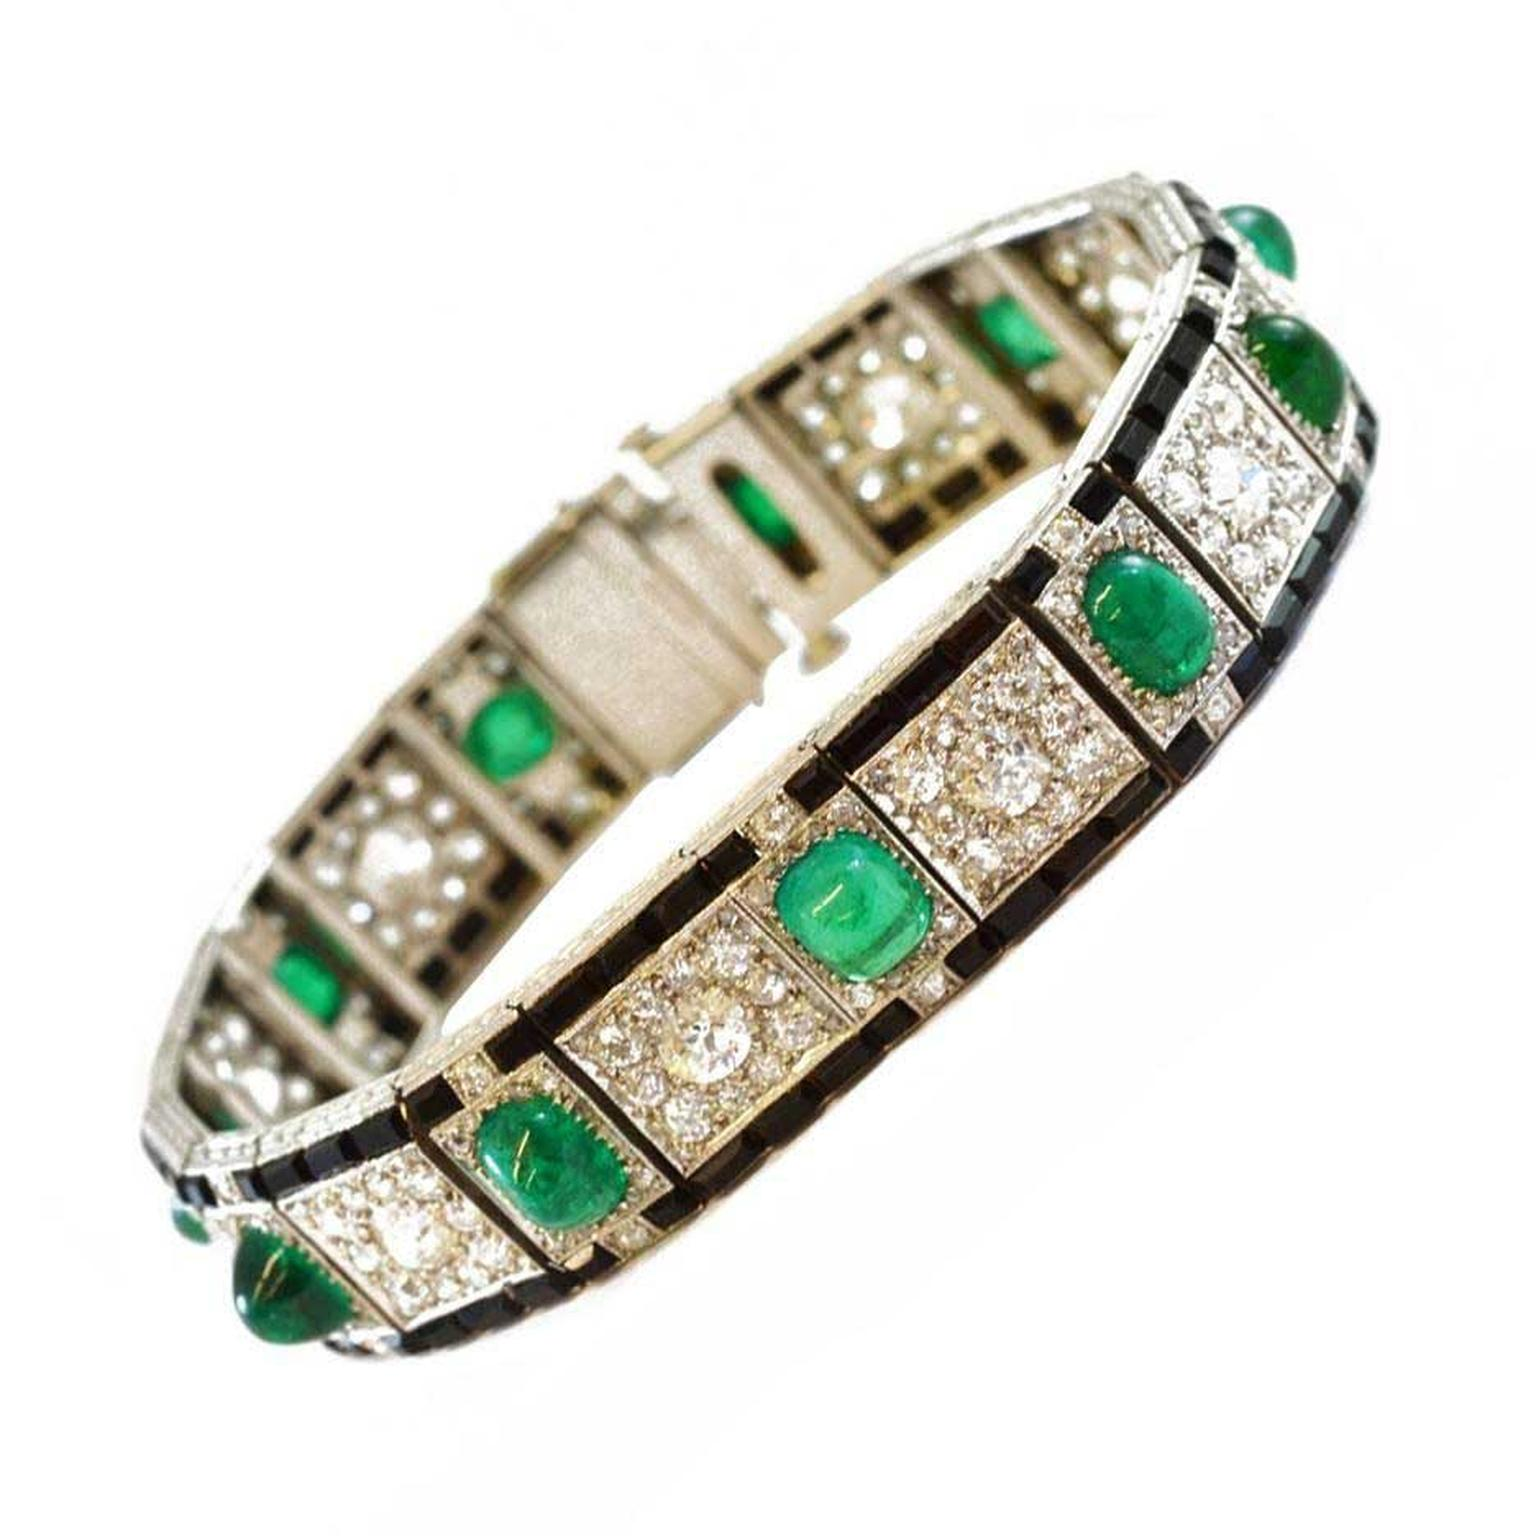 Sandra Cronan Art Deco bracelet with emeralds diamonds and onyx